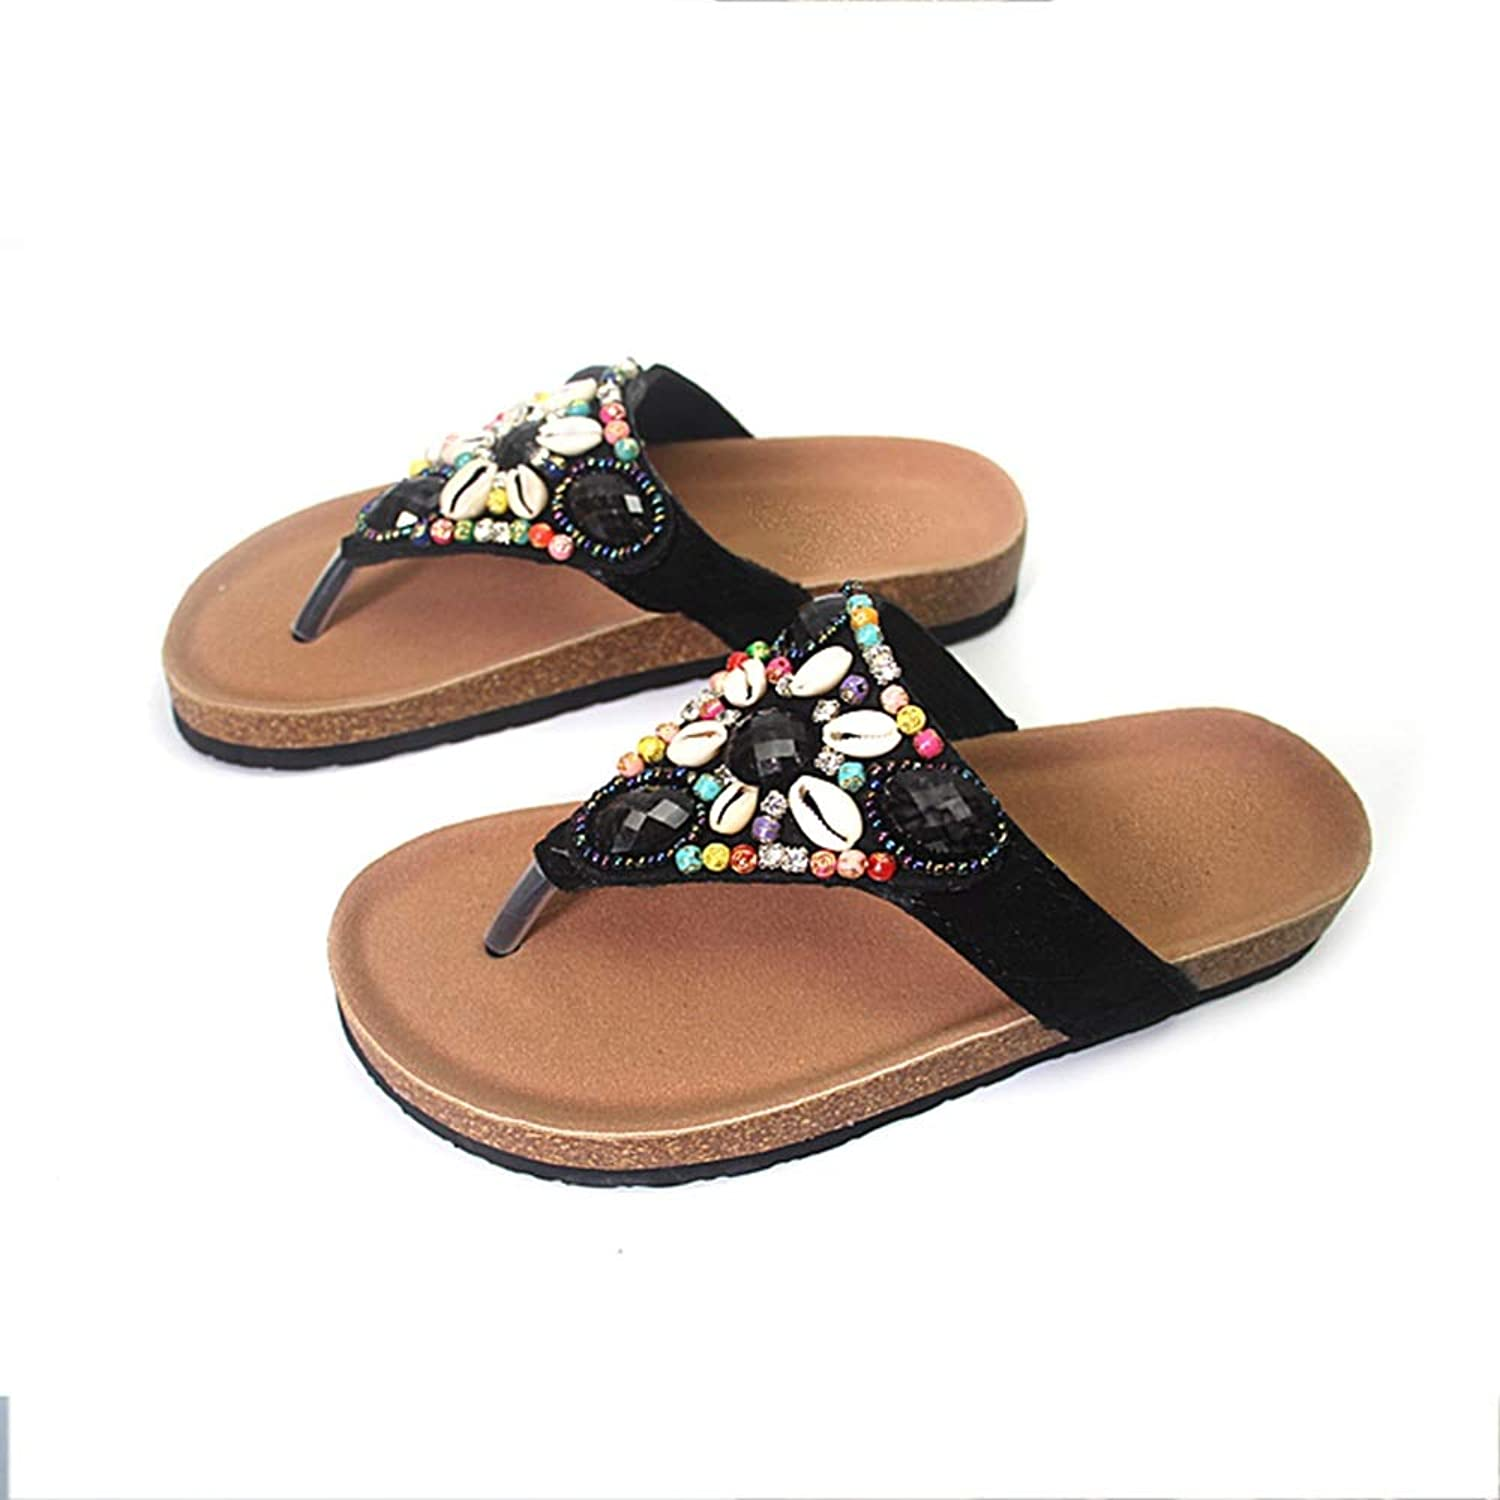 WANGFANG Sandals Women's Slippers, Summer Comfortable Shell Cork Slippers Flip Flops Beach Slippers, Four colors (color   Black, Size   US7 EU38 UK5 MX4.5 CN38)